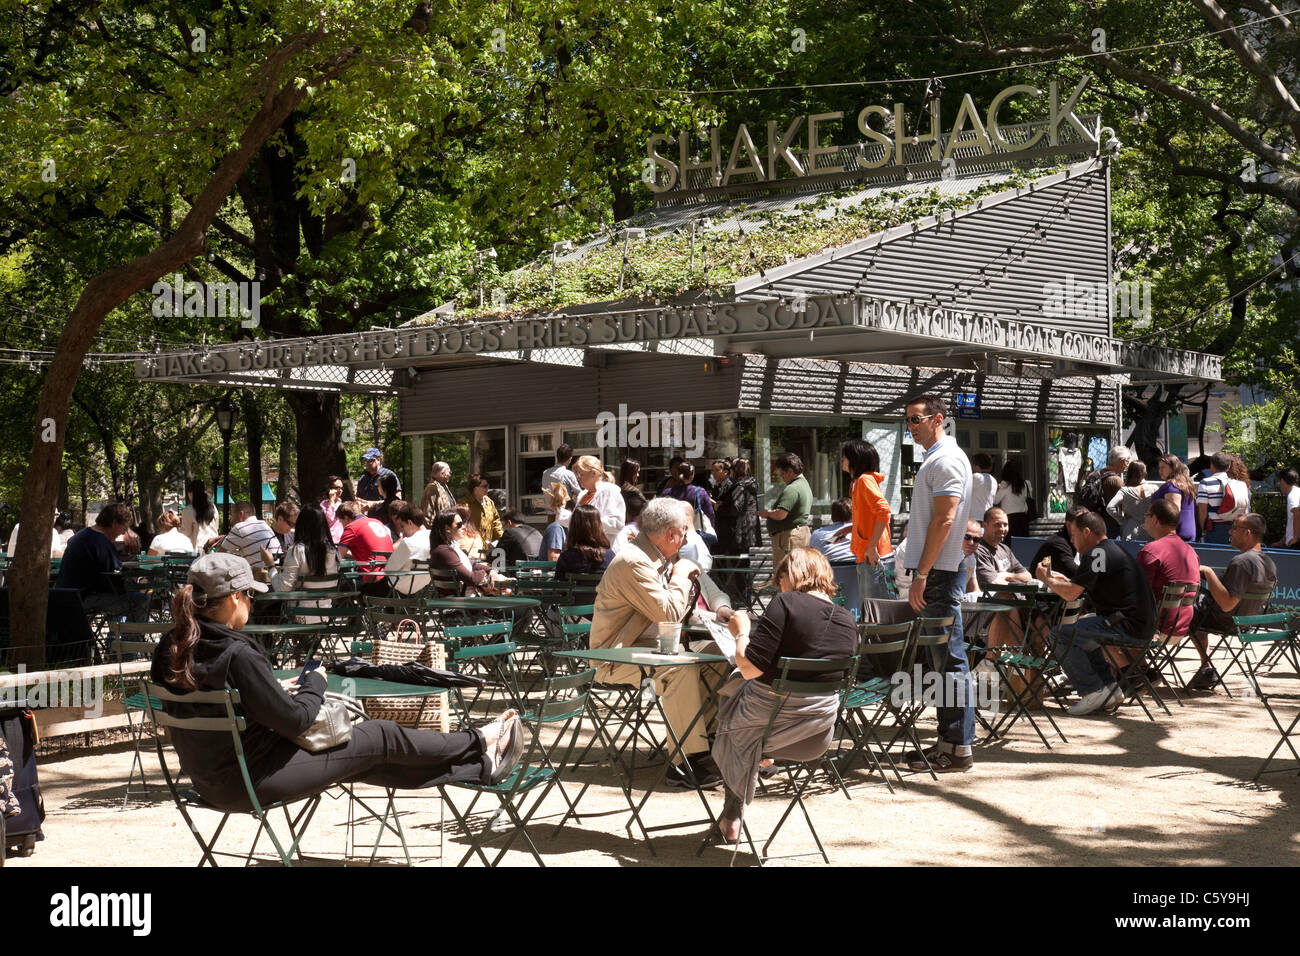 The Shake Shack, Madison Square Park, NYC (Series 2 of 2